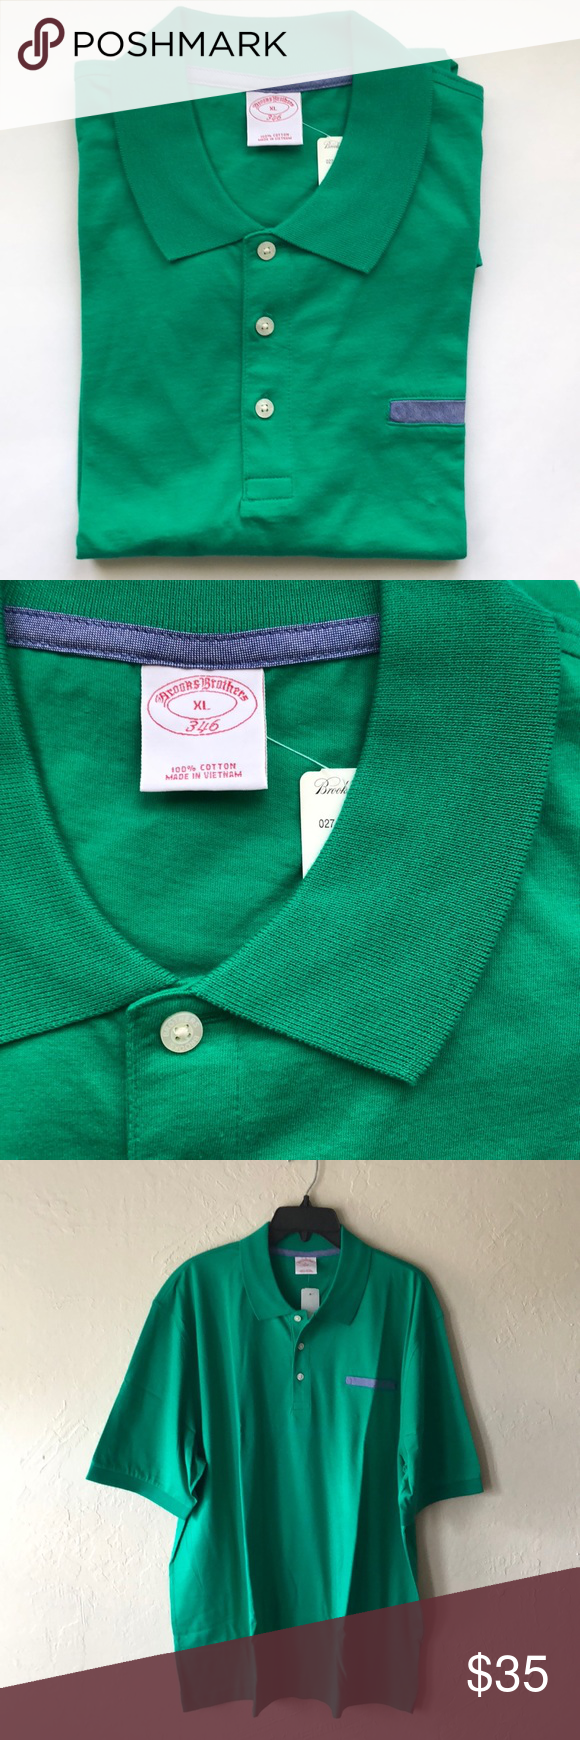 Nwt Brooks Brothers Green Polo Shirt Boutique In 2018 My Posh